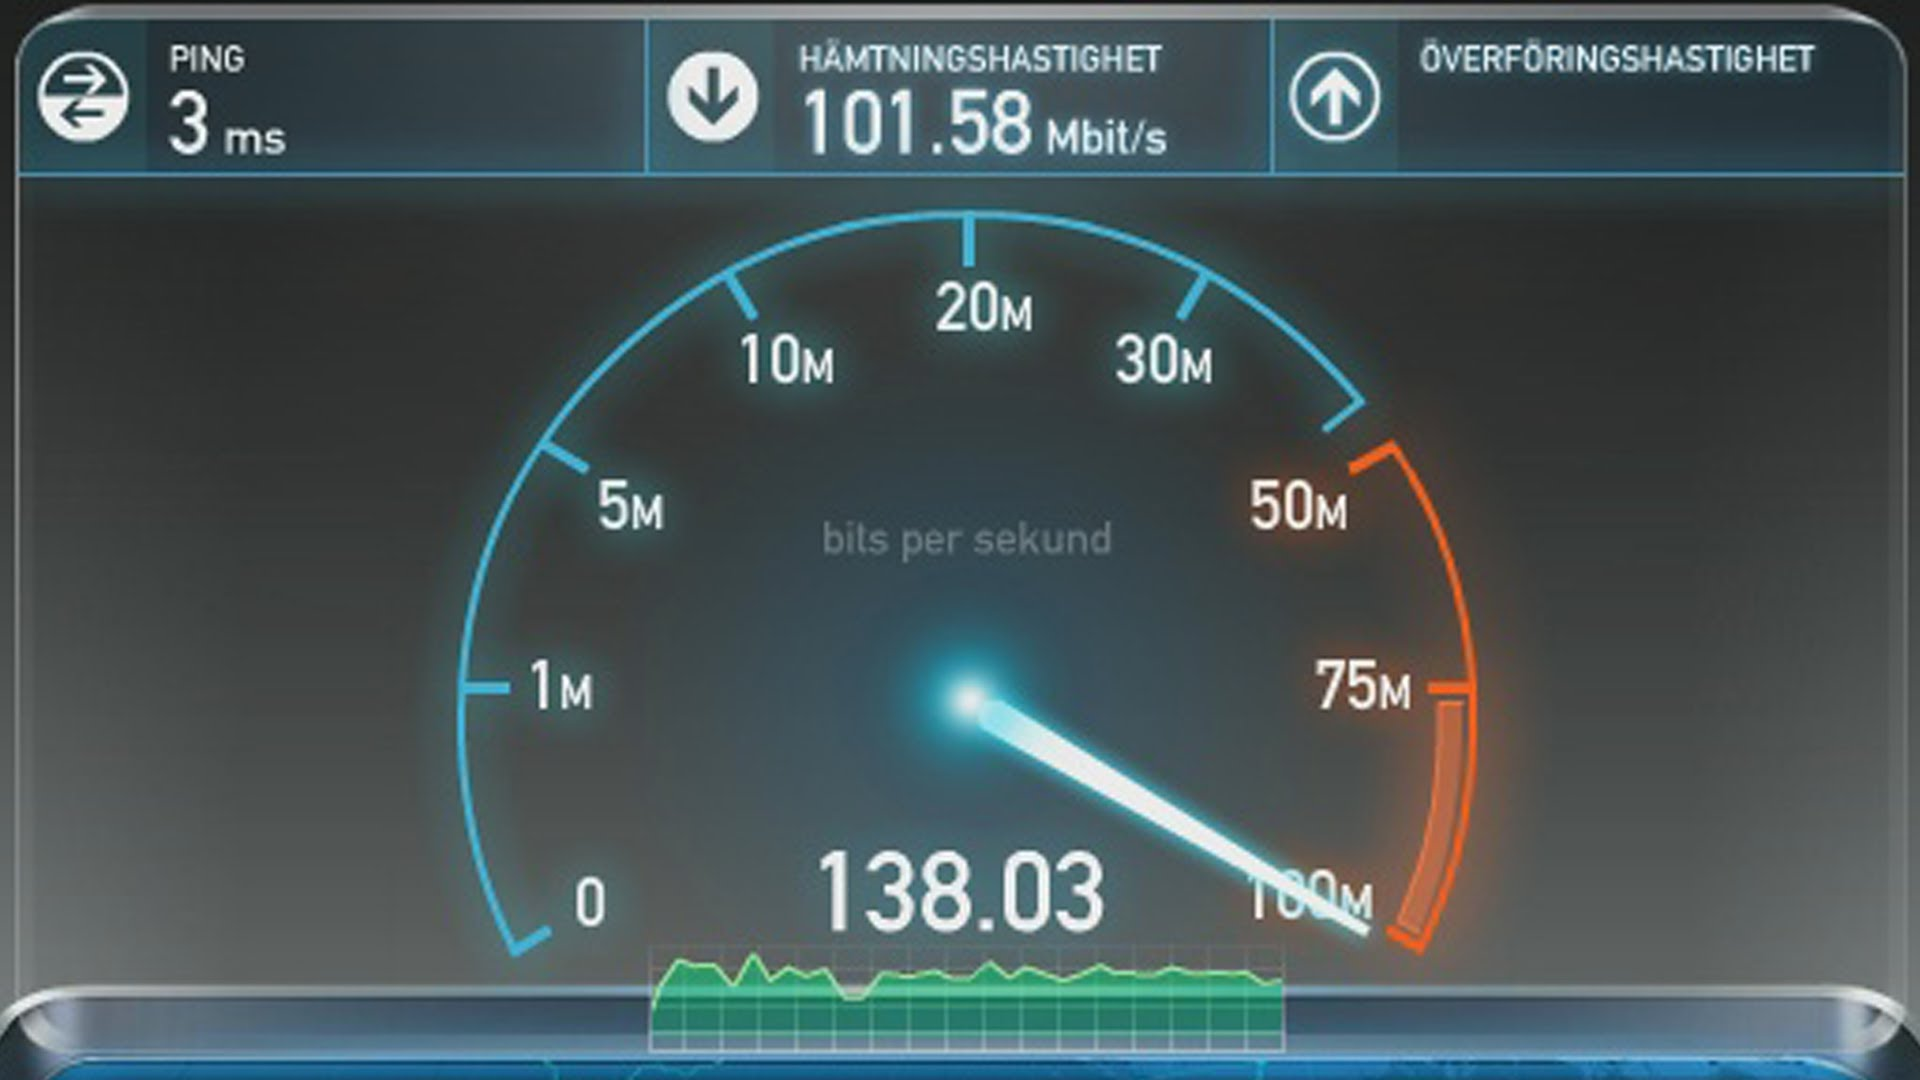 Now you can check your internet speed test. just click here and go to this site